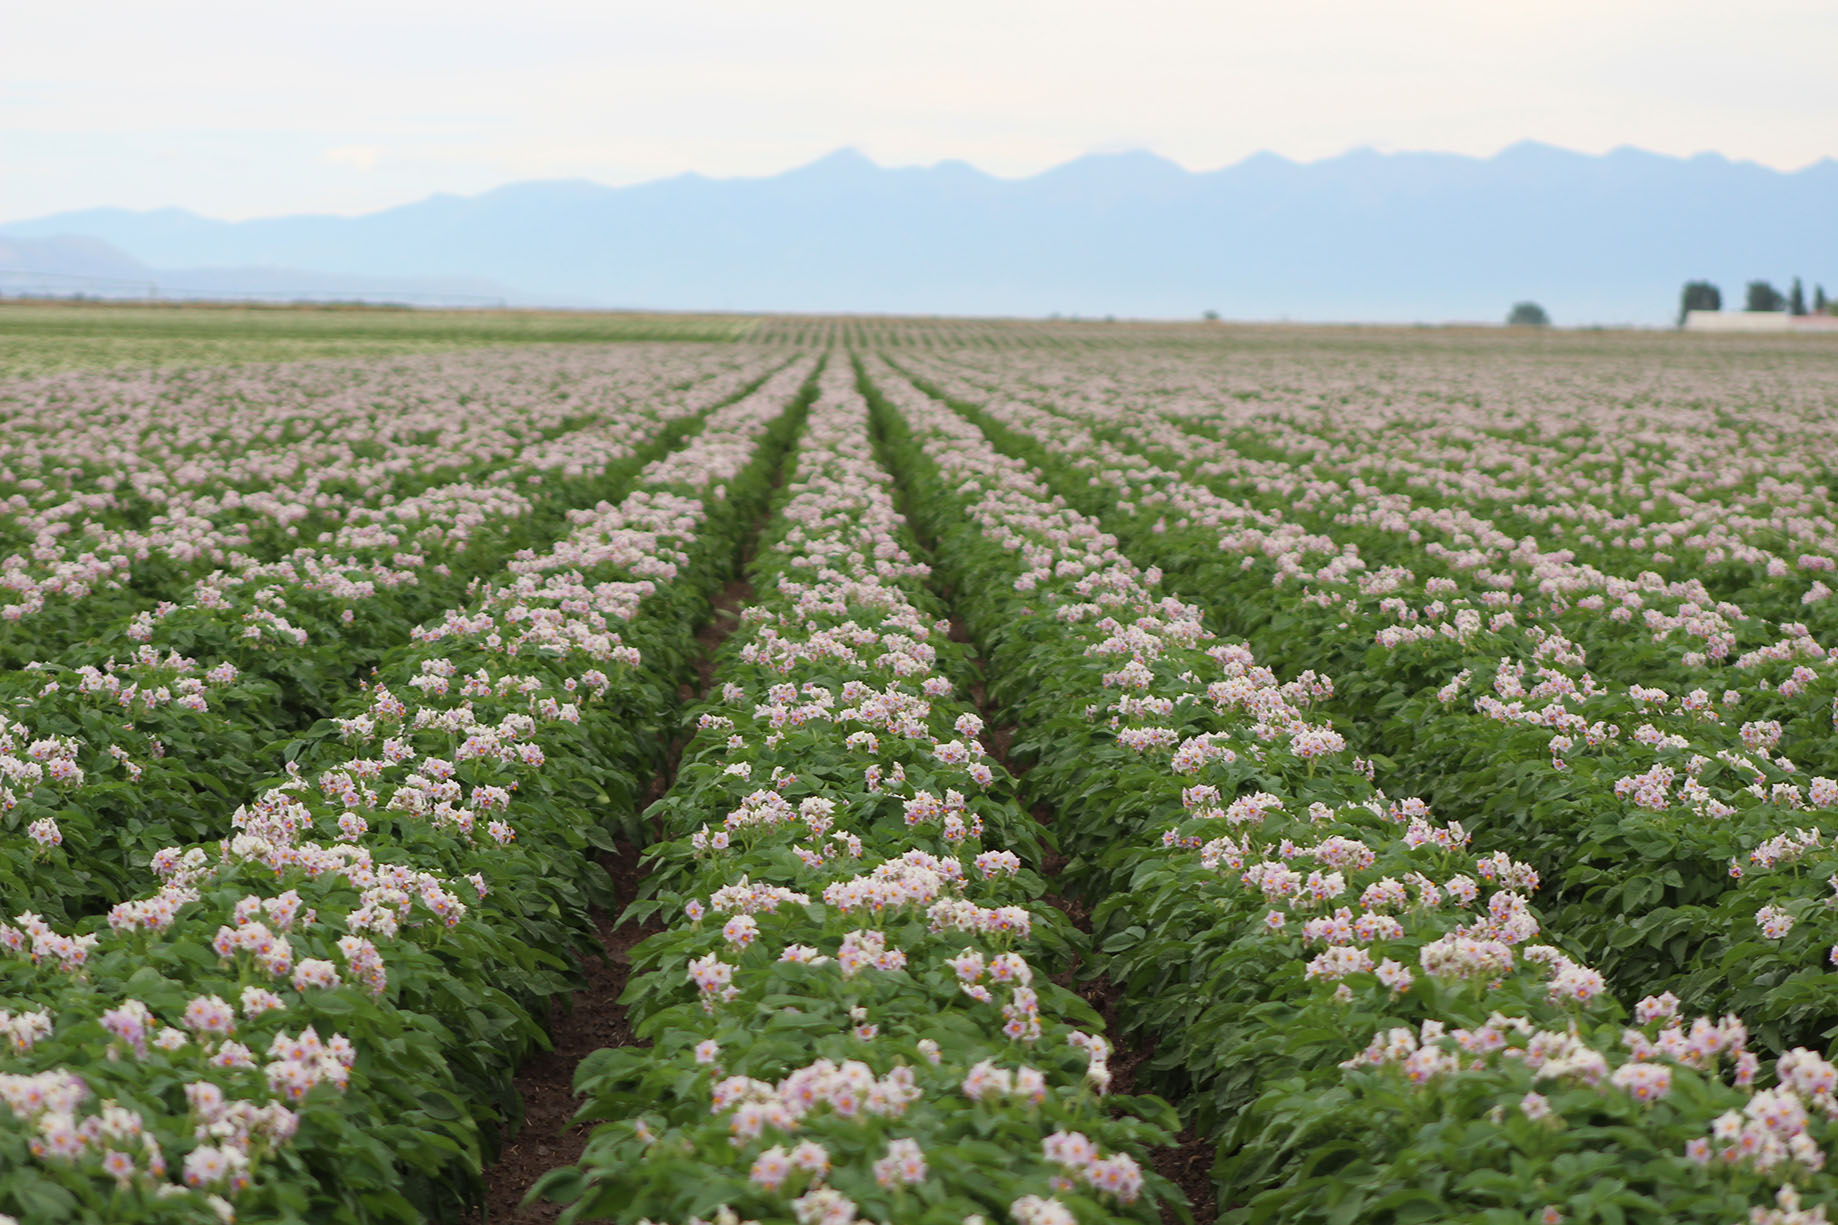 Potato rows: can agriculture teach us an architectural lesson?